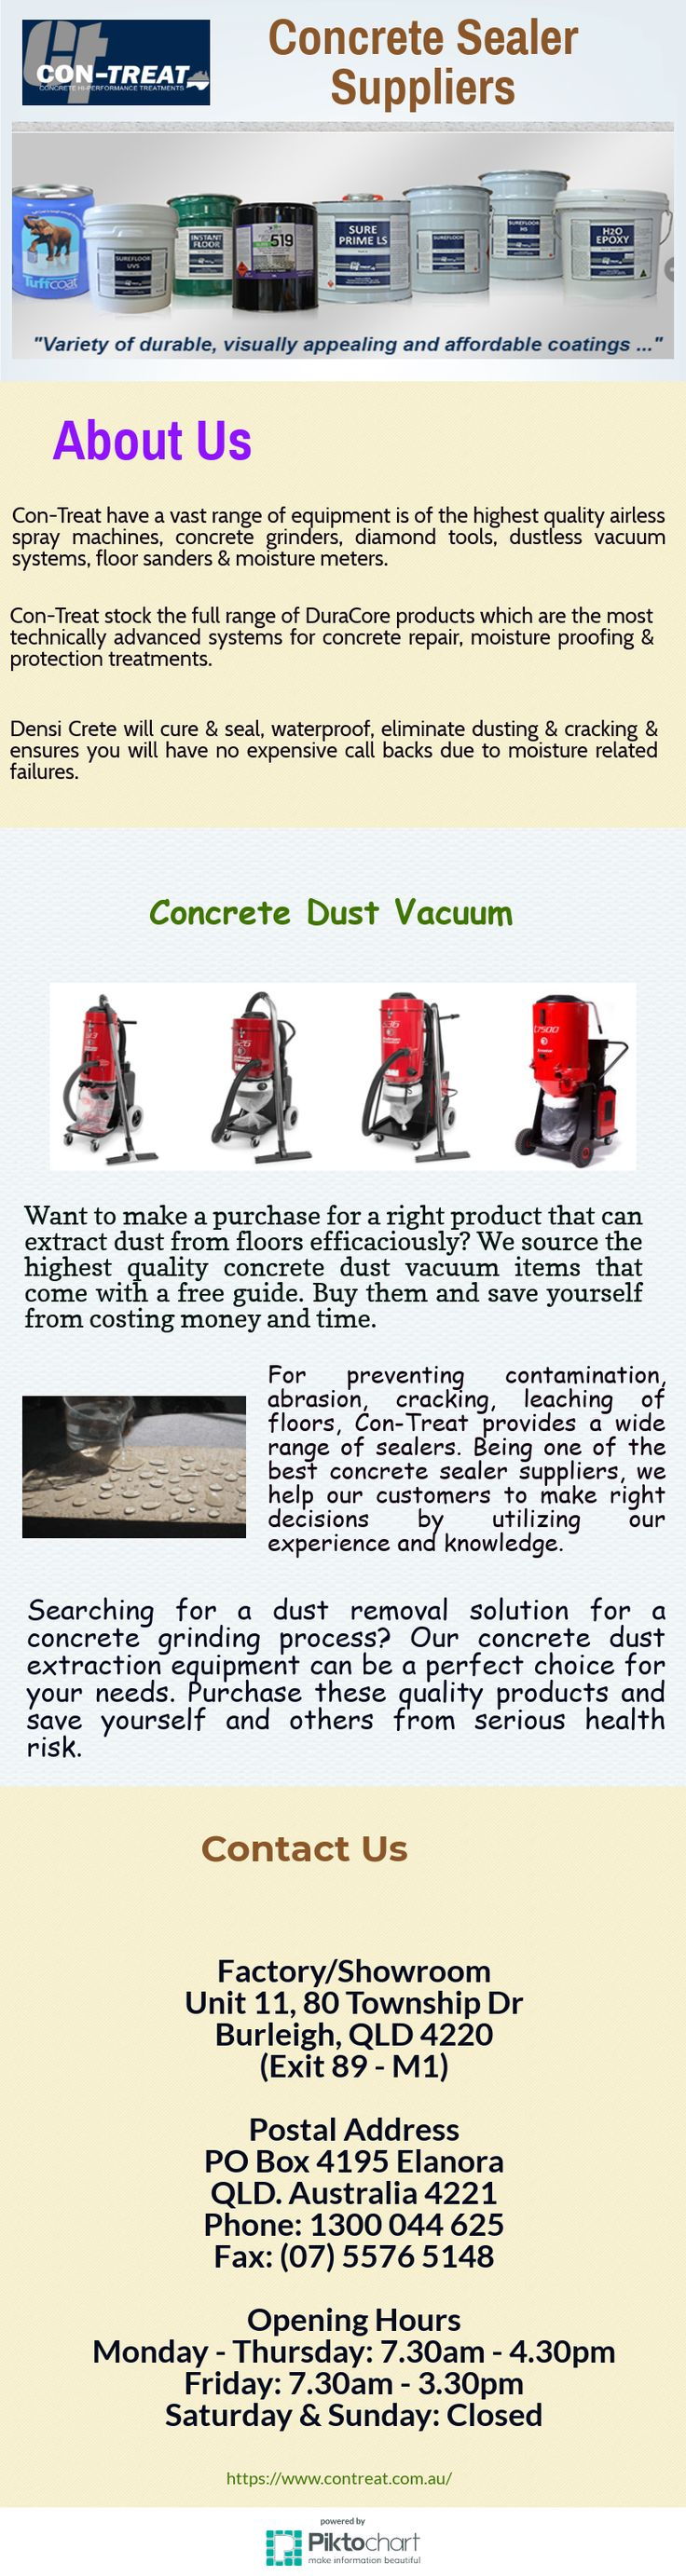 Searching for a dust removal solution for a concrete grinding process? Our concrete dust extraction equipment can be a perfect choice for your needs. Purchase these quality products and save yourself and others from serious health risk.